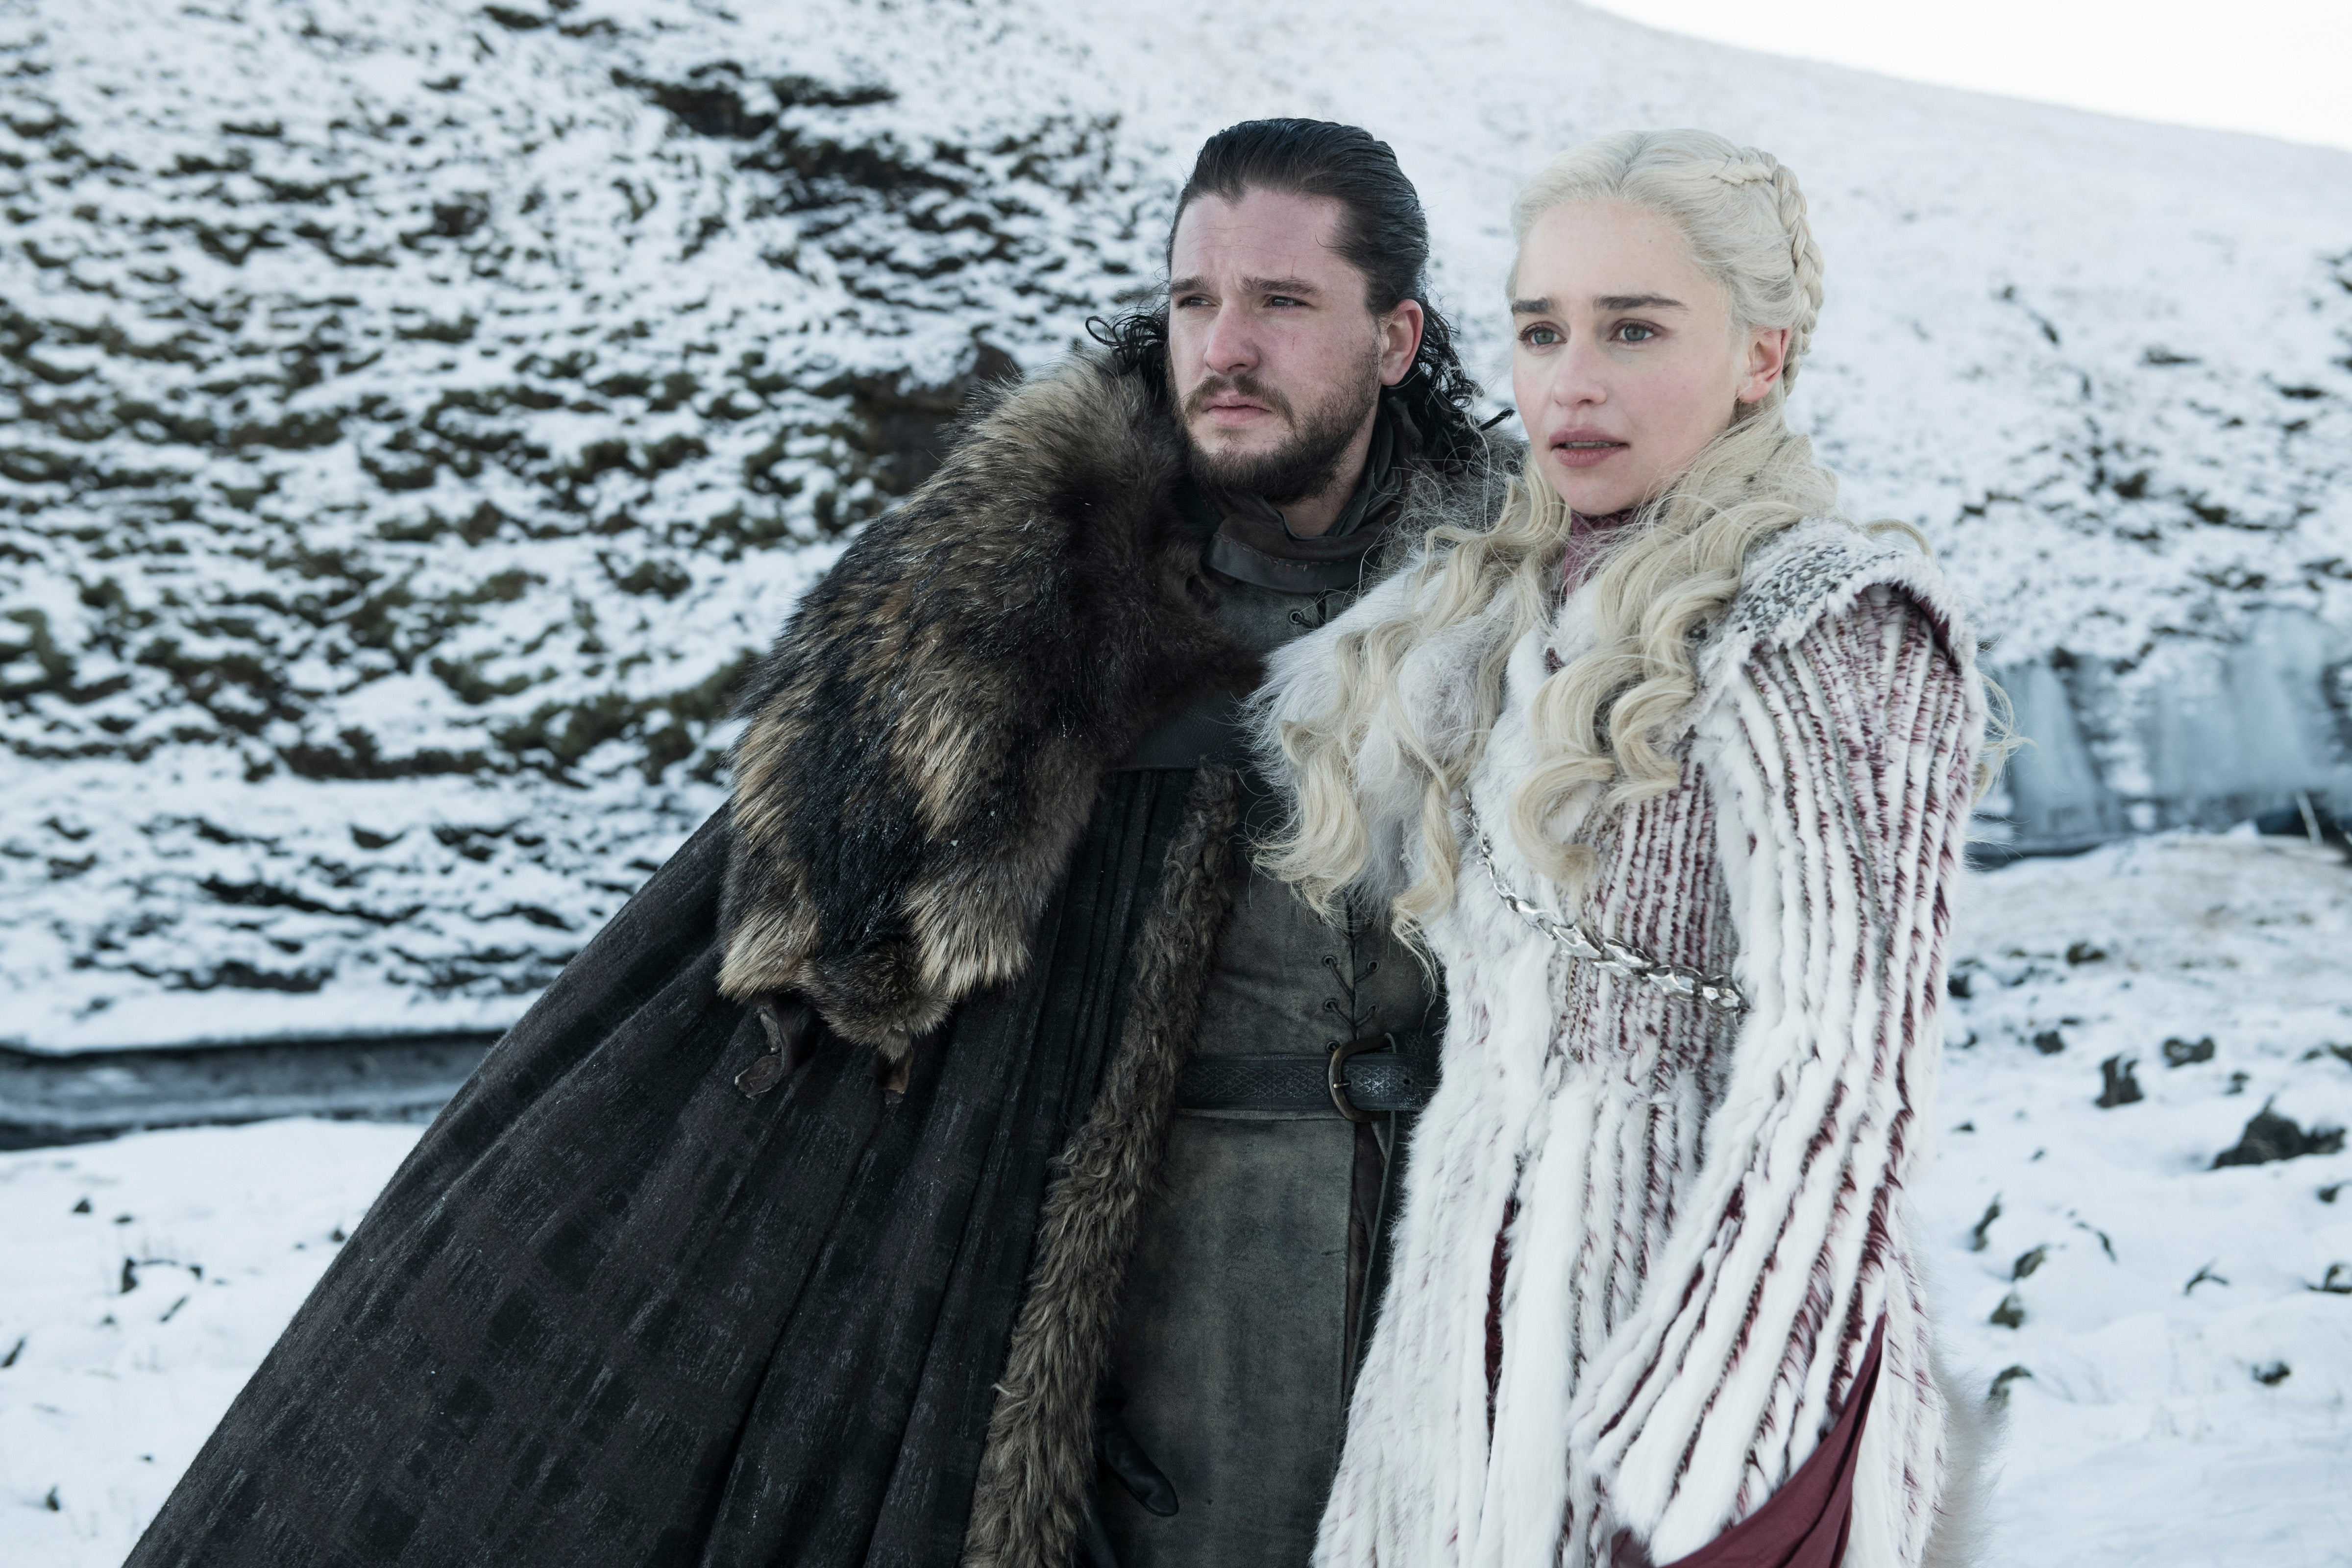 Kit Harington and Emilia Clarke stand in a snowy landscape.